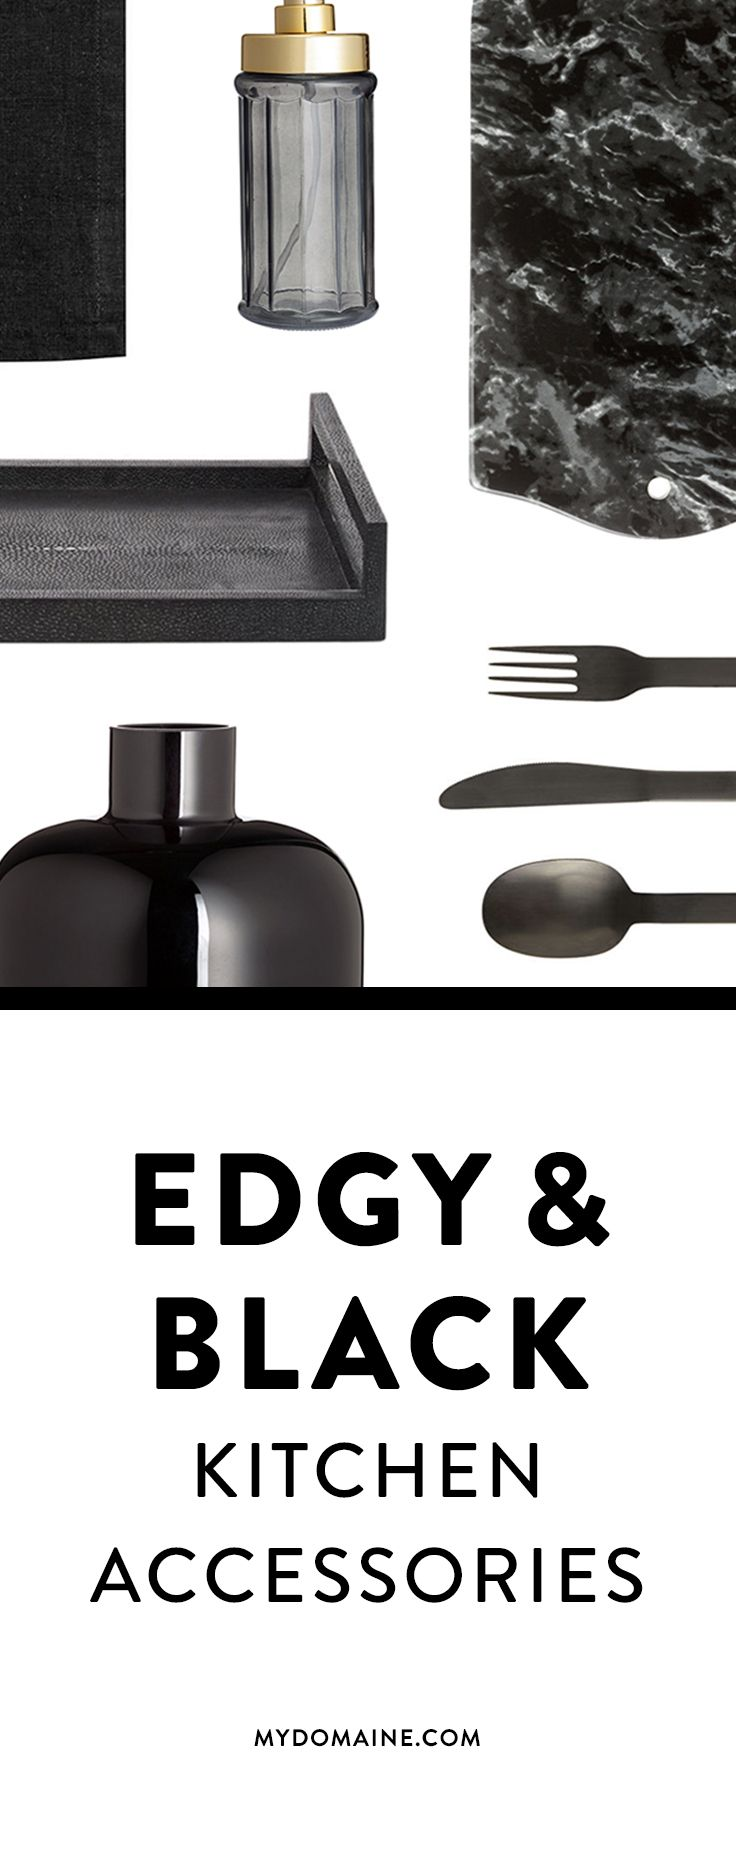 Add some attitude to your home with these black and edgy accessories